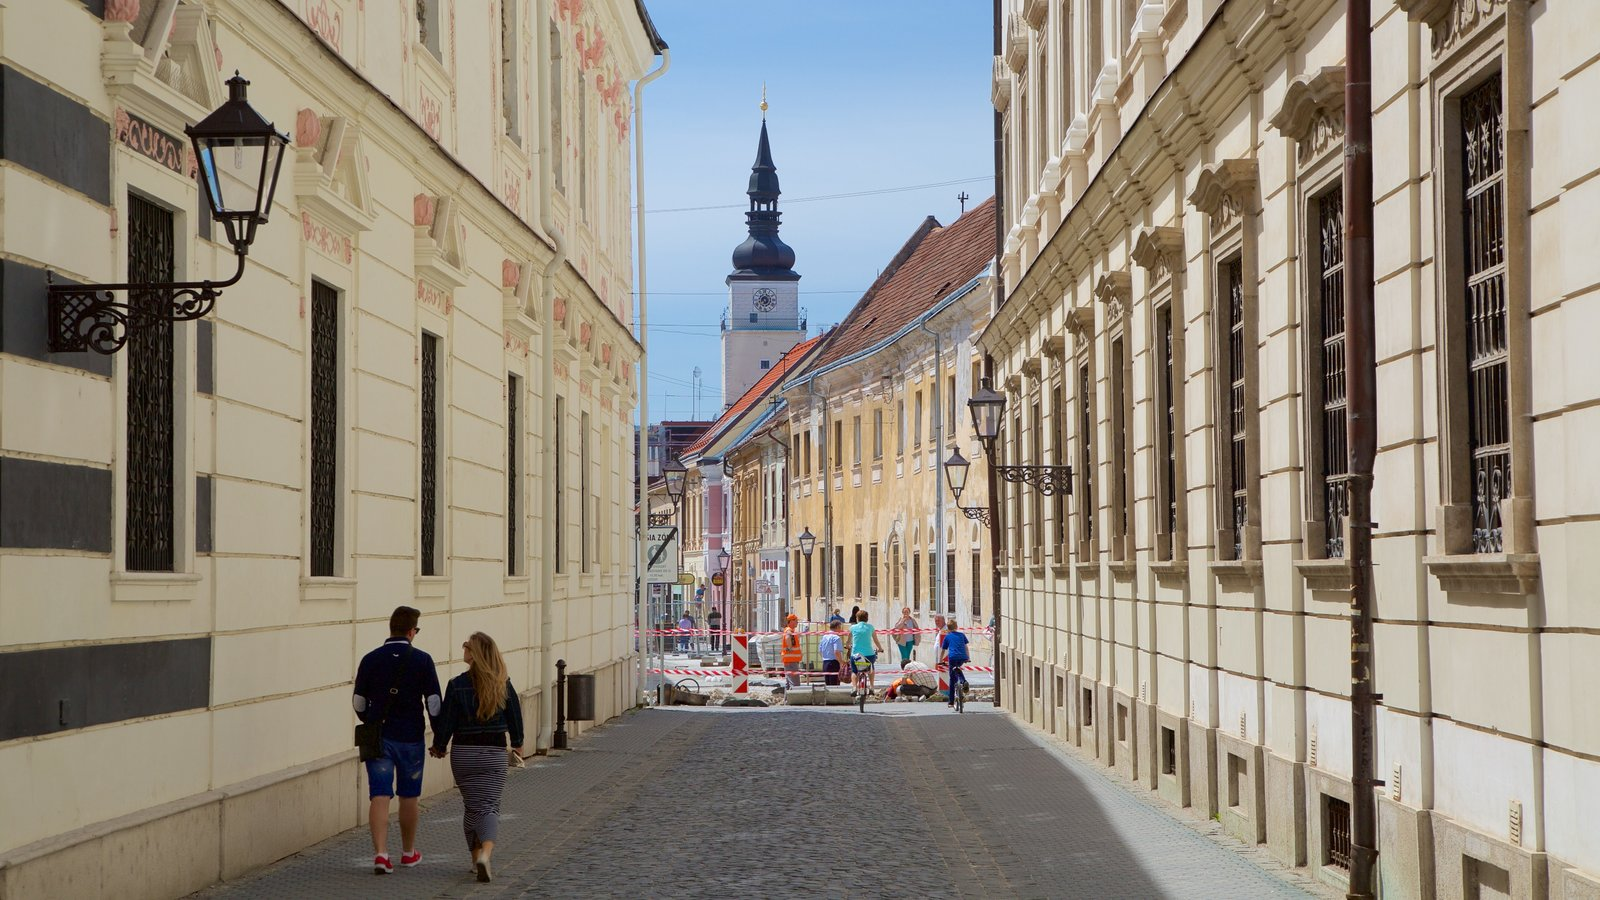 Trnava featuring street scenes as well as a couple